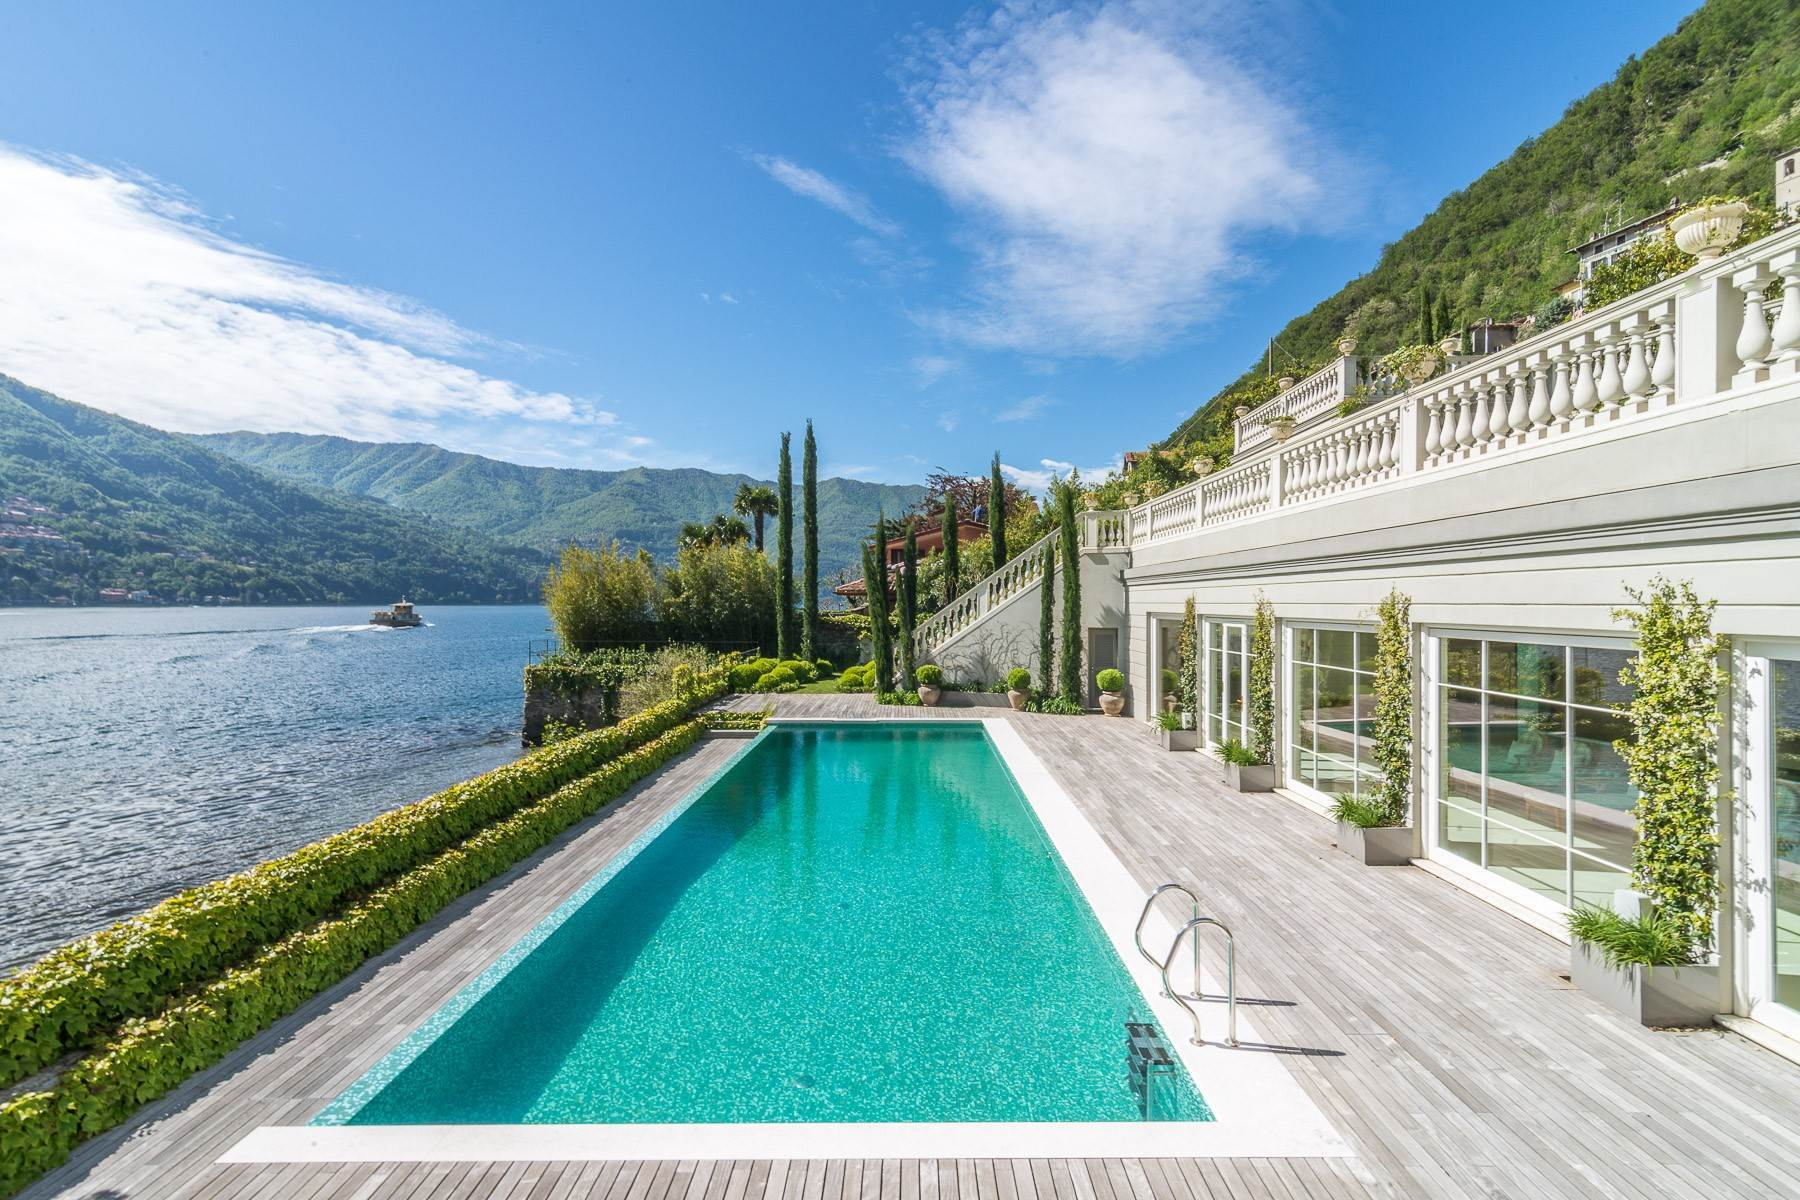 18. Other Residential Homes at Laglio, Como, Italy